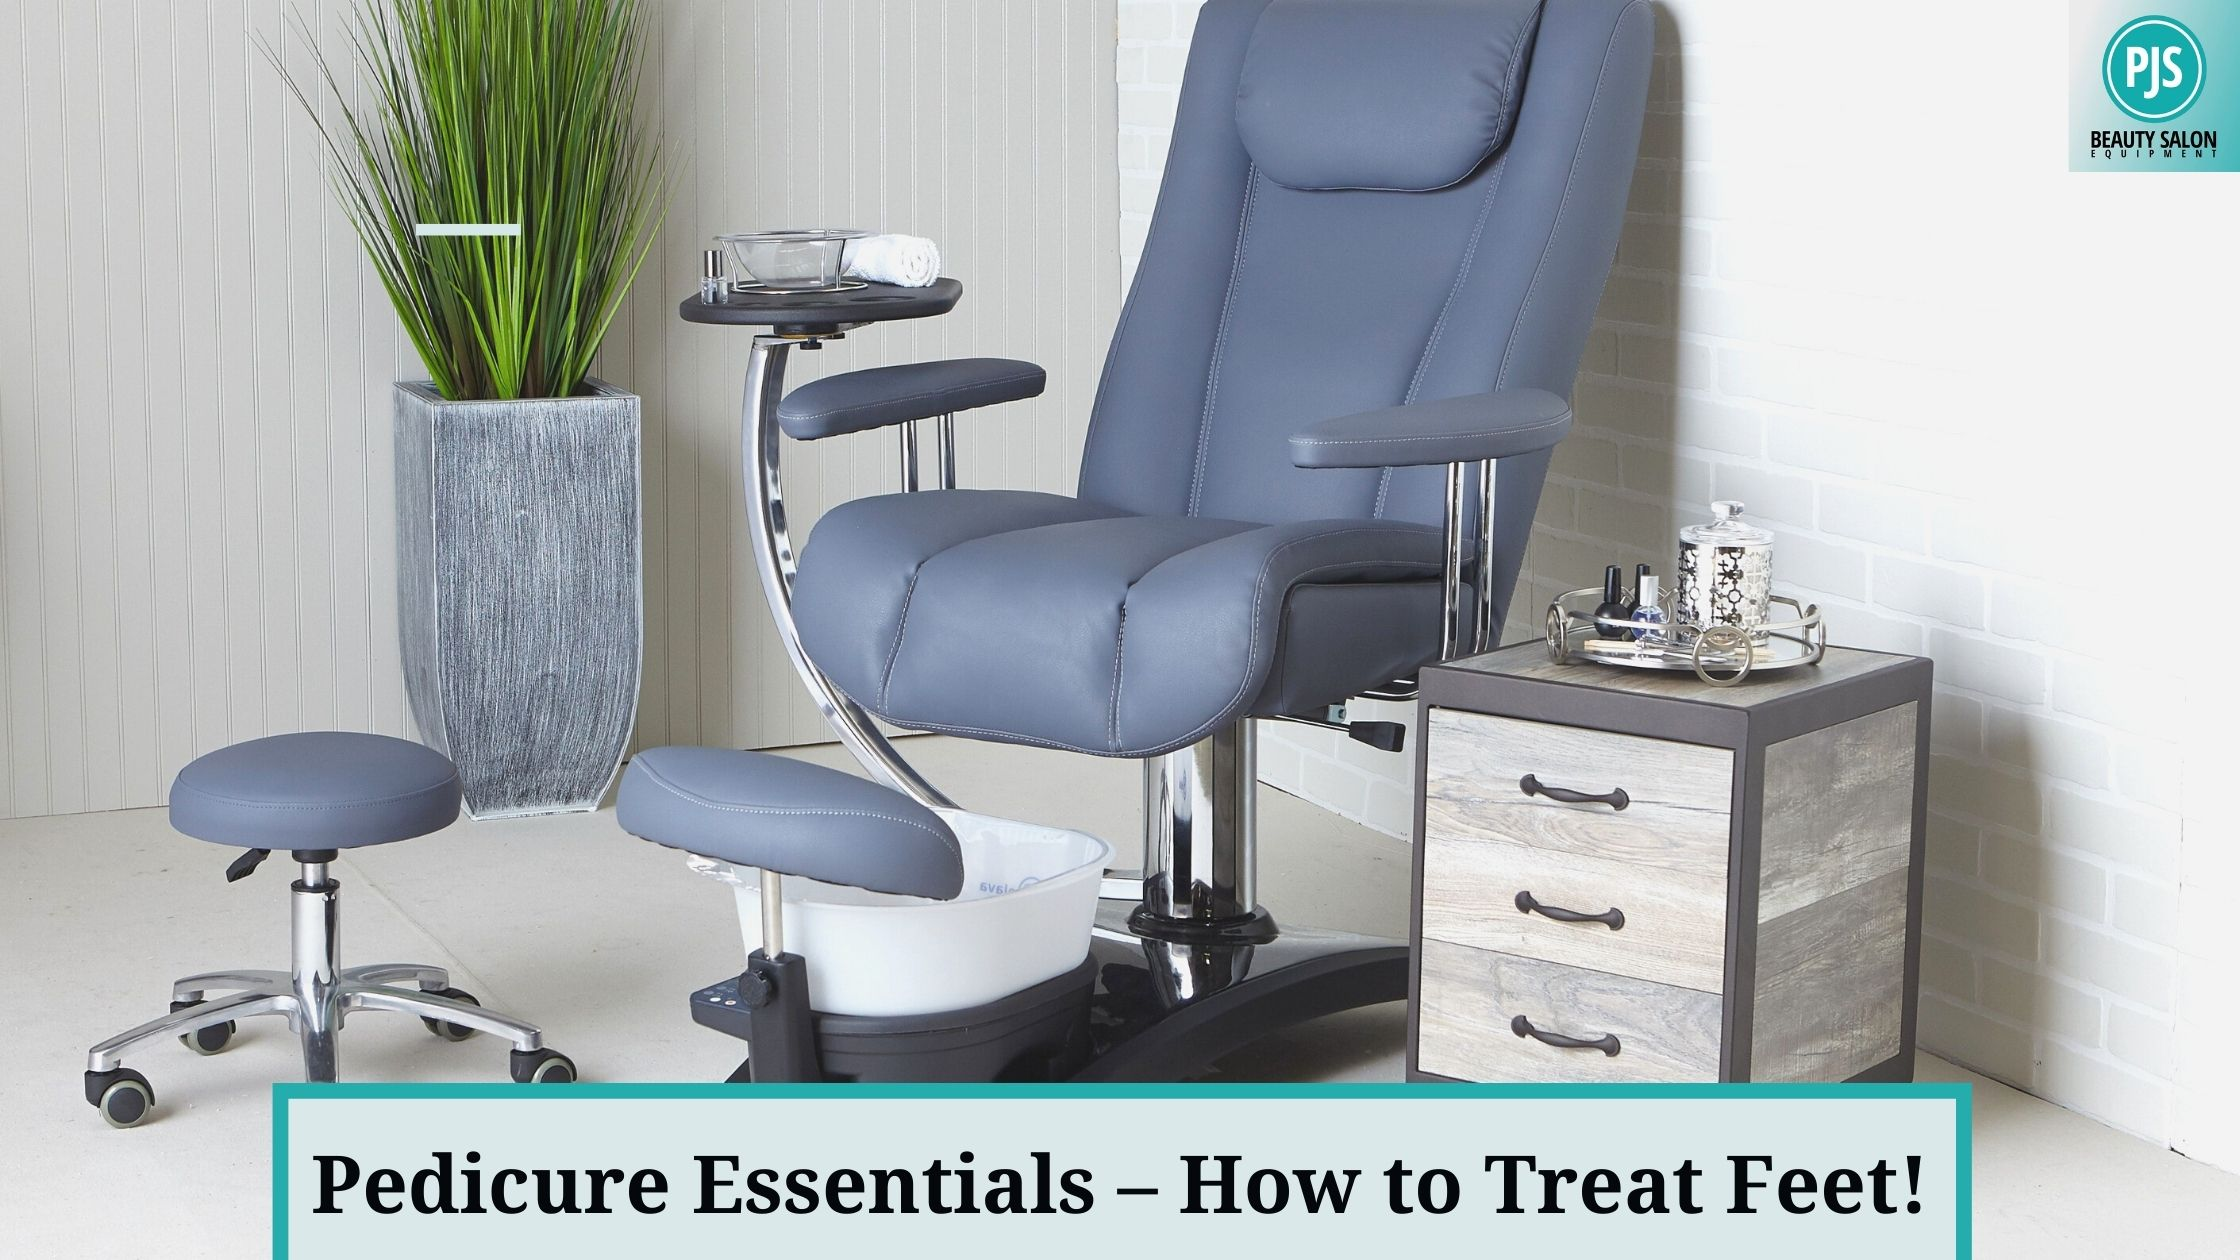 Pedicure Essentials – How to Treat Feet!